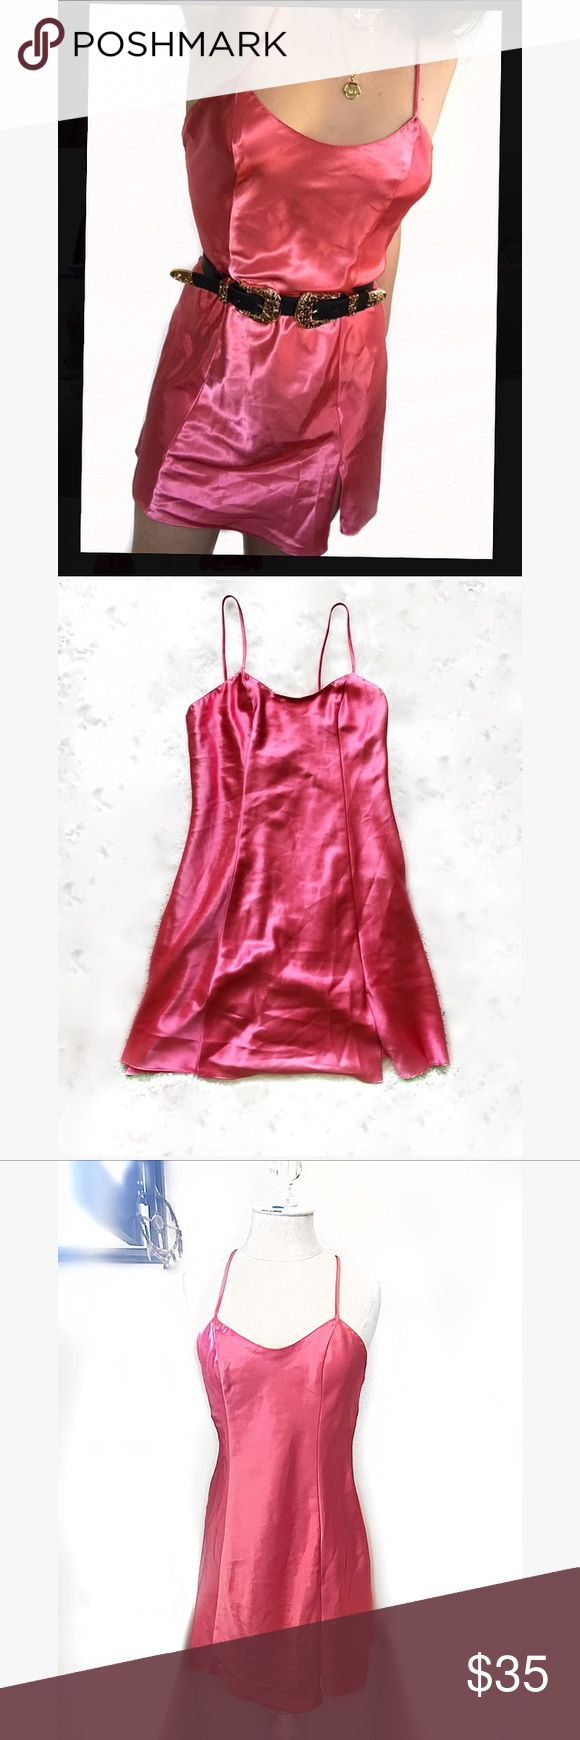 25 Fantastically Retro And Vintage Home Decorations: 25+ Best Ideas About Pink Satin Dress On Pinterest